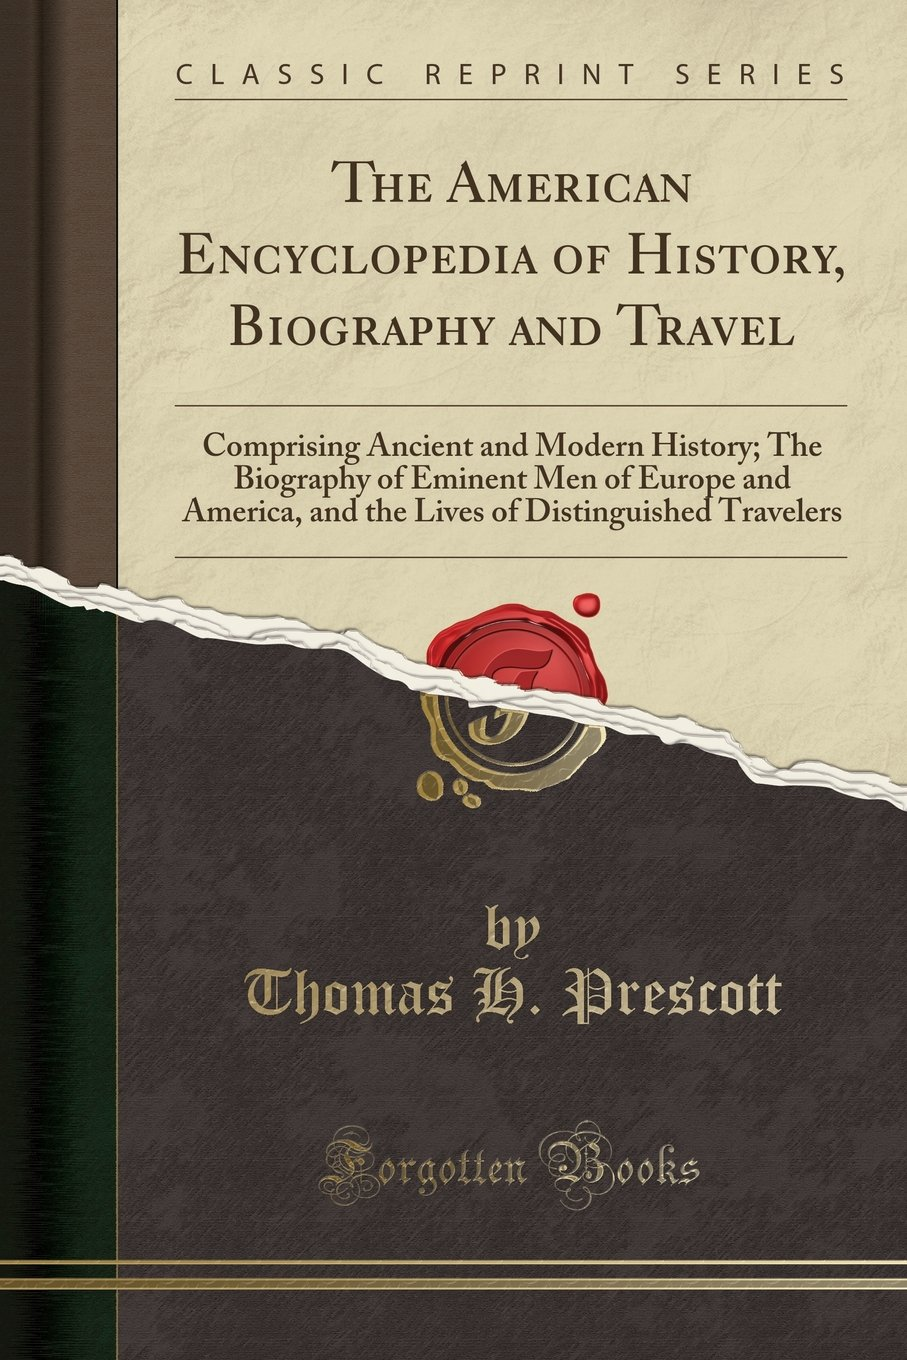 The American Encyclopedia of History, Biography and Travel: Comprising Ancient and Modern History; The Biography of Eminent Men of Europe and America, ... of Distinguished Travelers (Classic Reprint) pdf epub